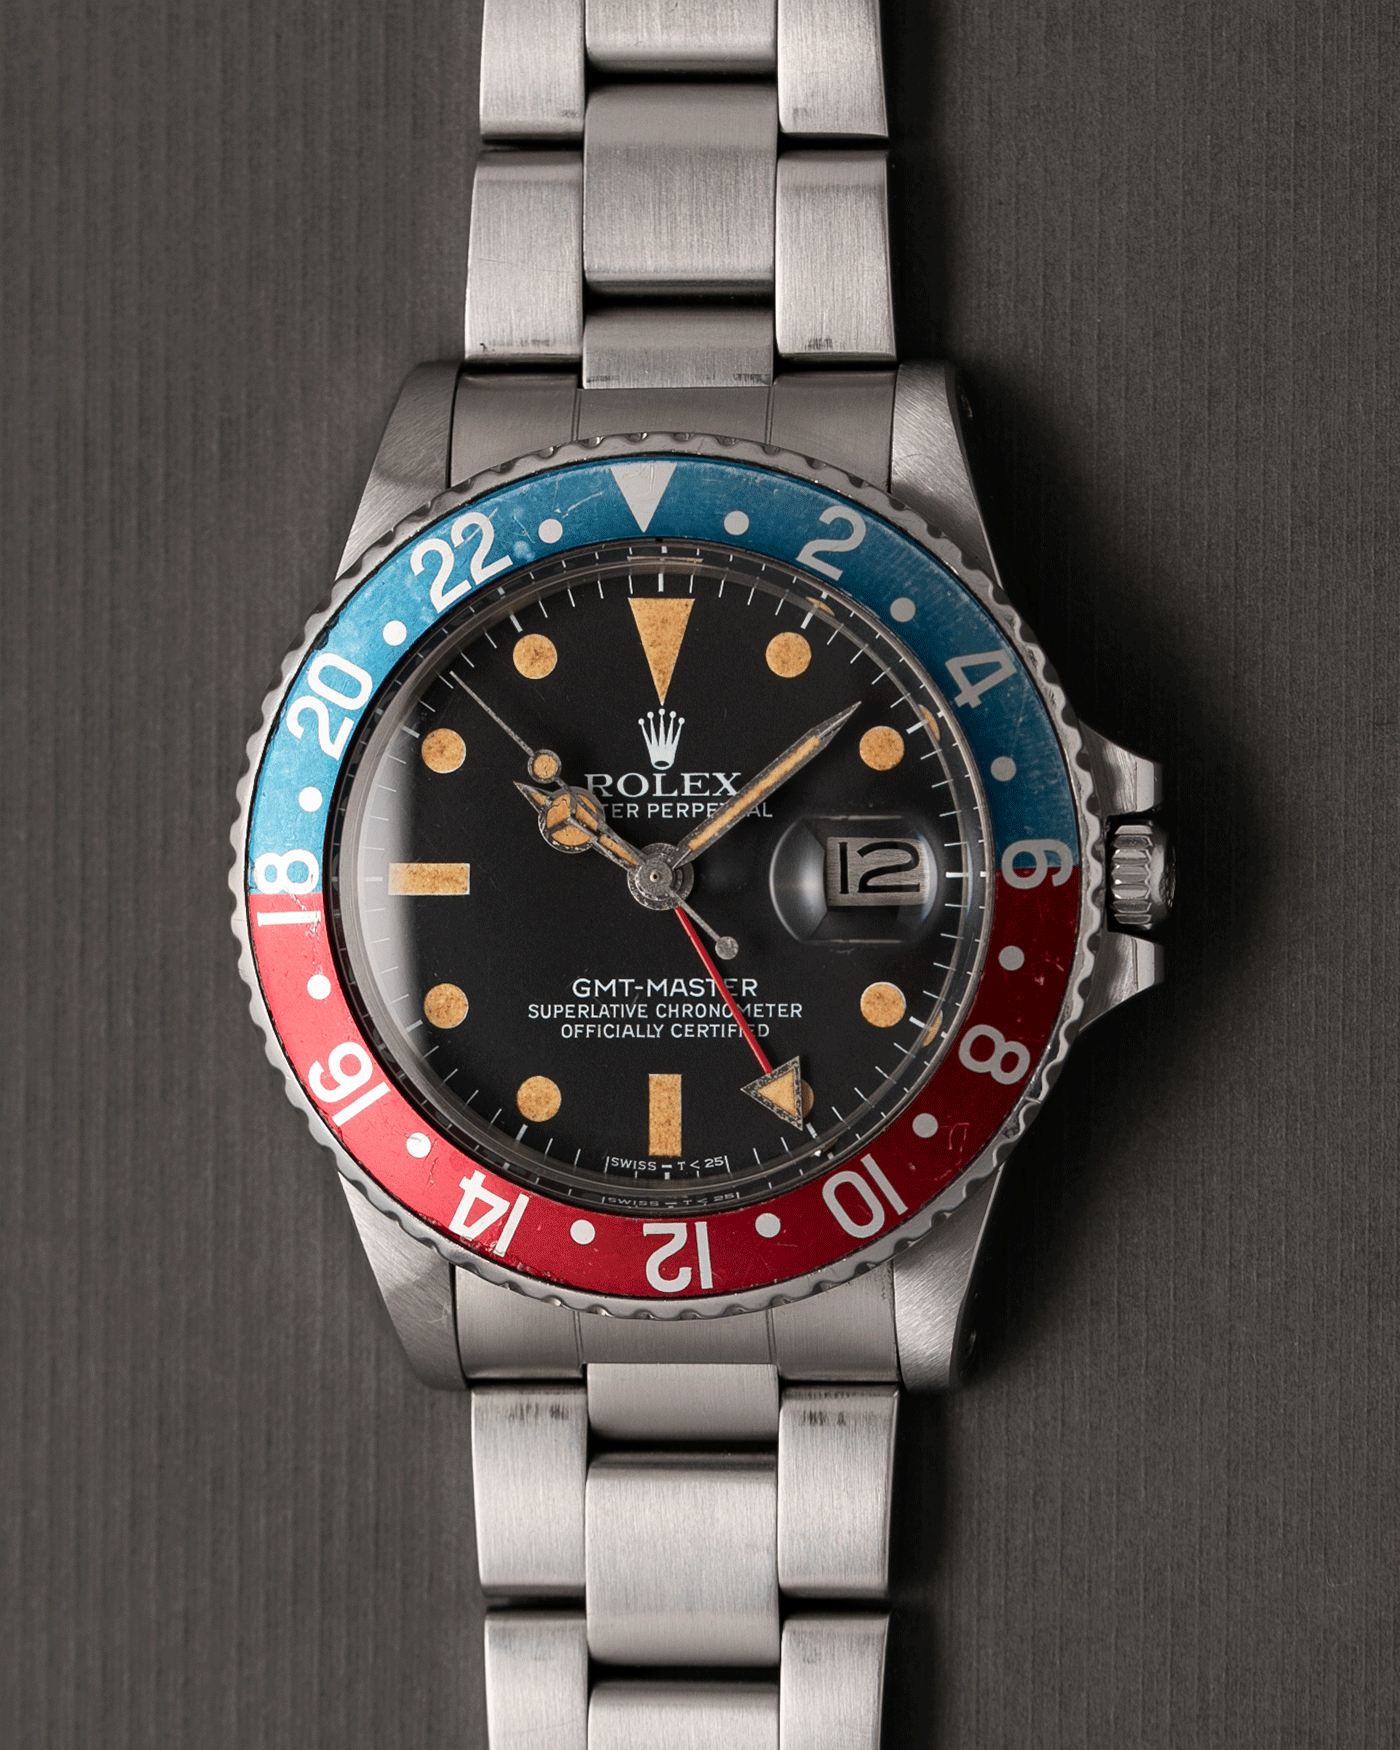 Brand: Rolex Year: 1977 Model: GMT-Master Reference Number: 1675 Serial Number: 519XXXX Material: Stainless Steel Movement: Cal. 1570 Case Diameter: 40mm Lug Width: 20mm Bracelet: Rolex 78360 Heavy Oyster Bracelet with 580 Endlinks and 'A' Stamp